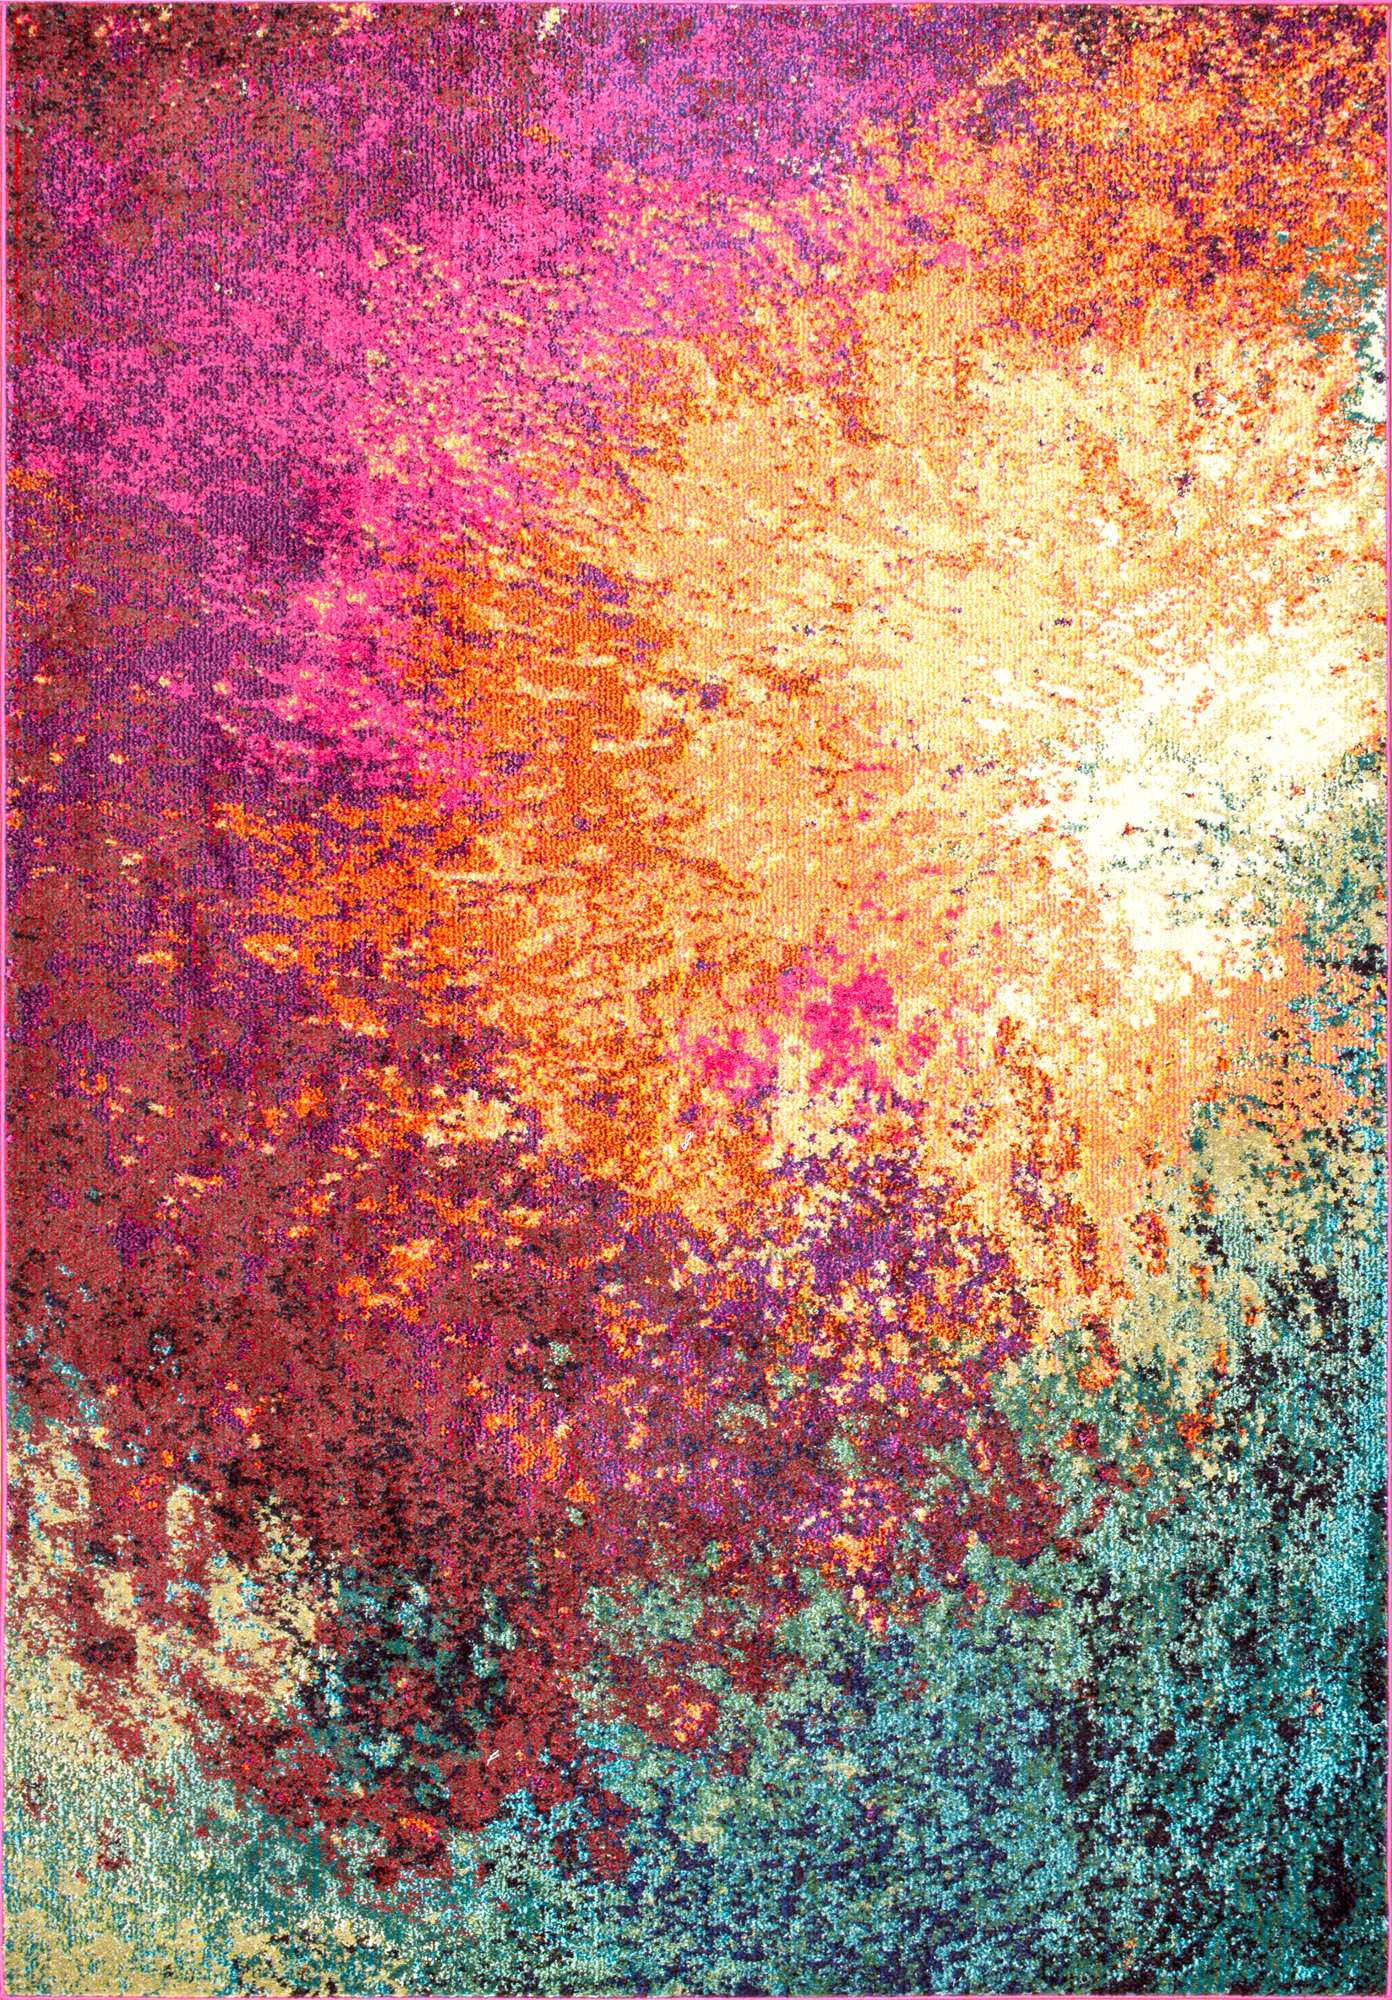 Bold Area Rugs 10 boldly colorful vintage area rugs - atta girl says